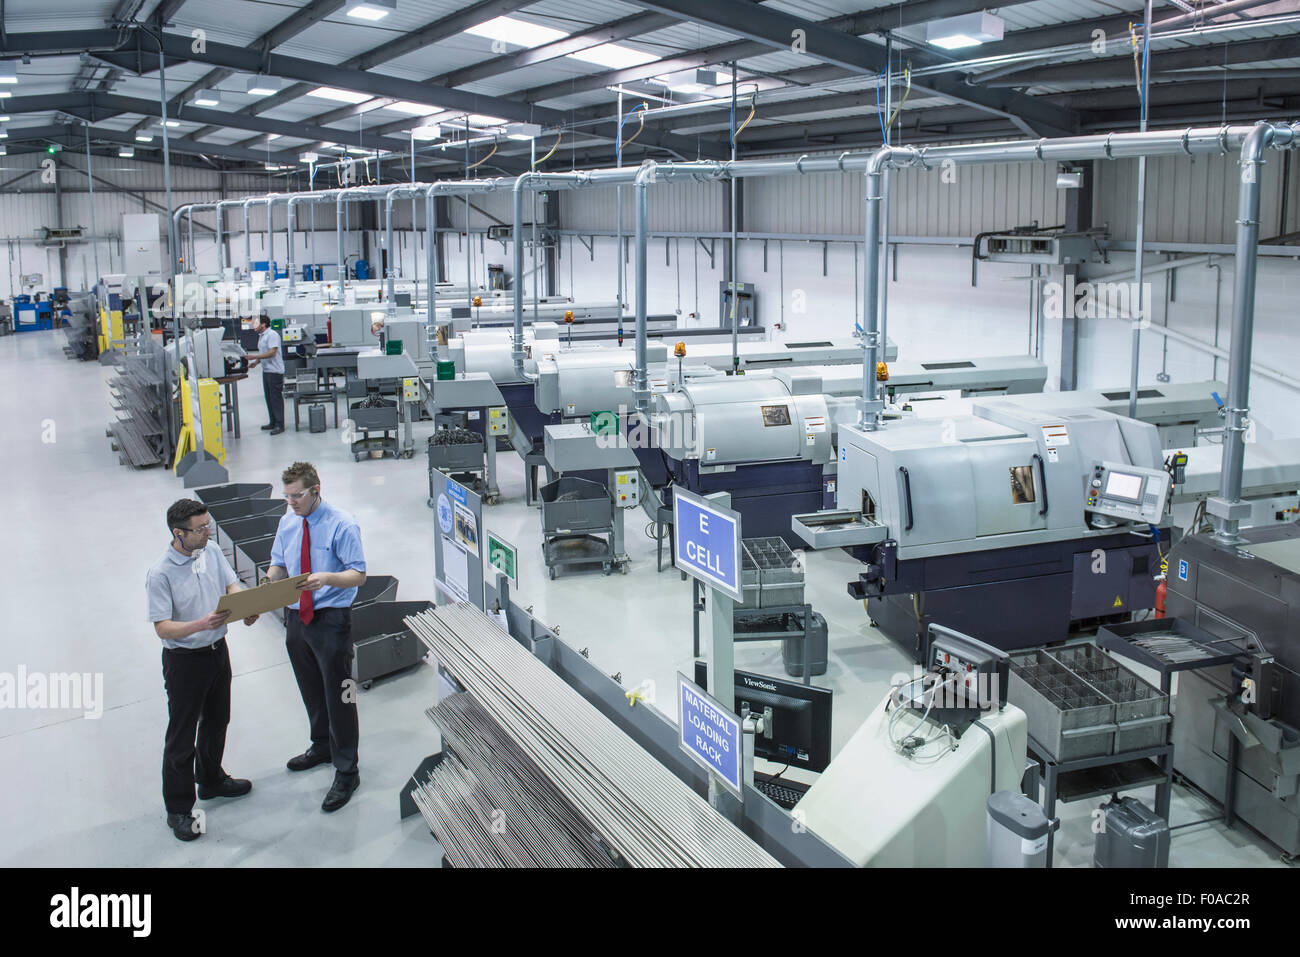 High angle view of engineering factory Photo Stock